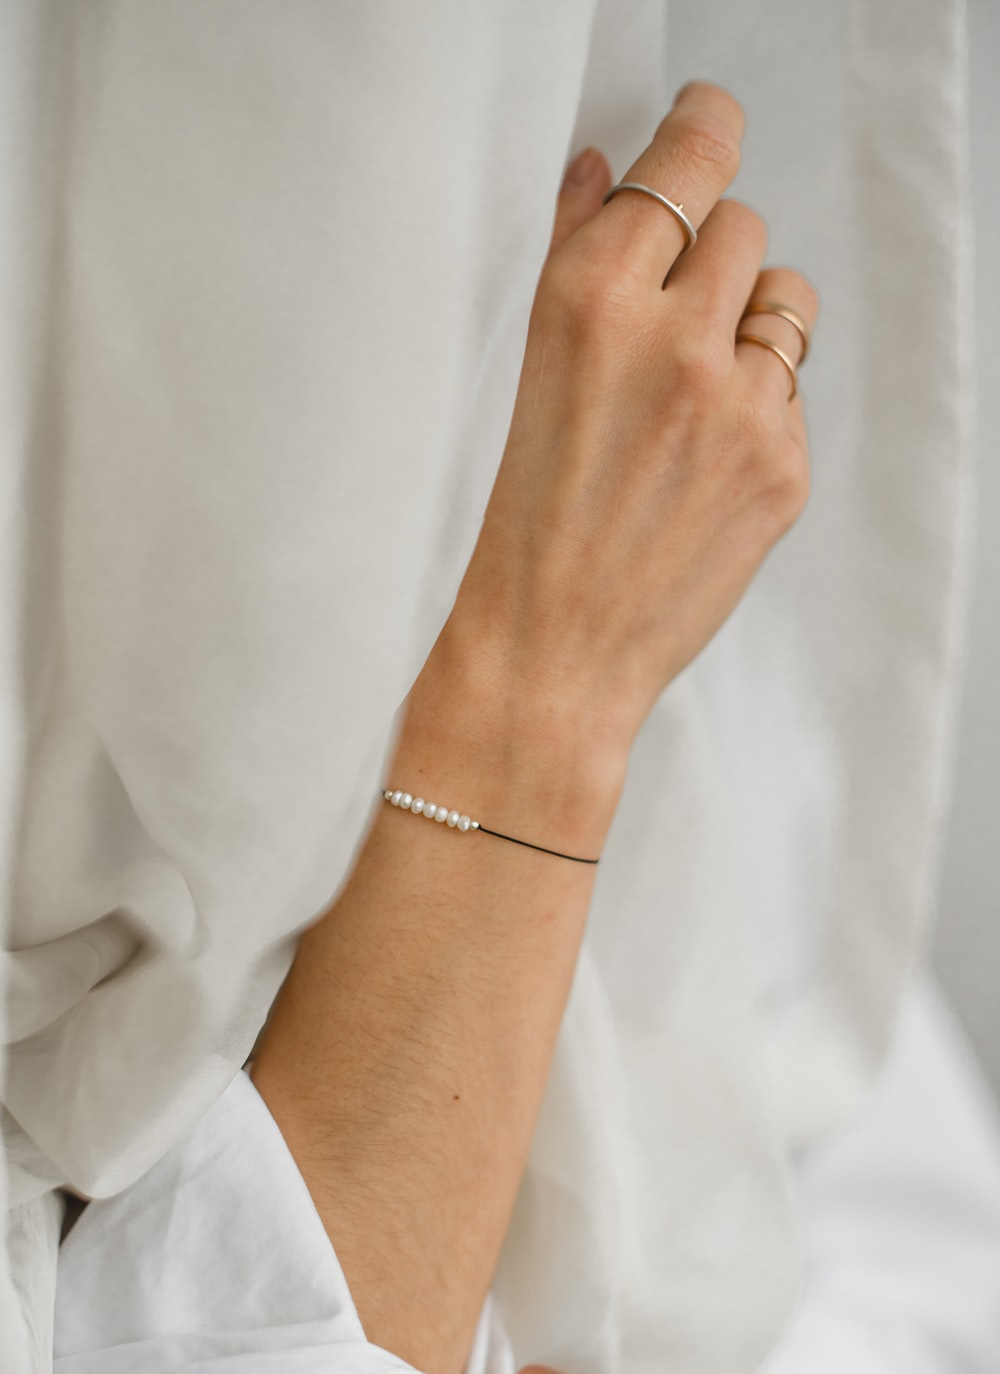 person wearing silver bracelet and white dress shirt